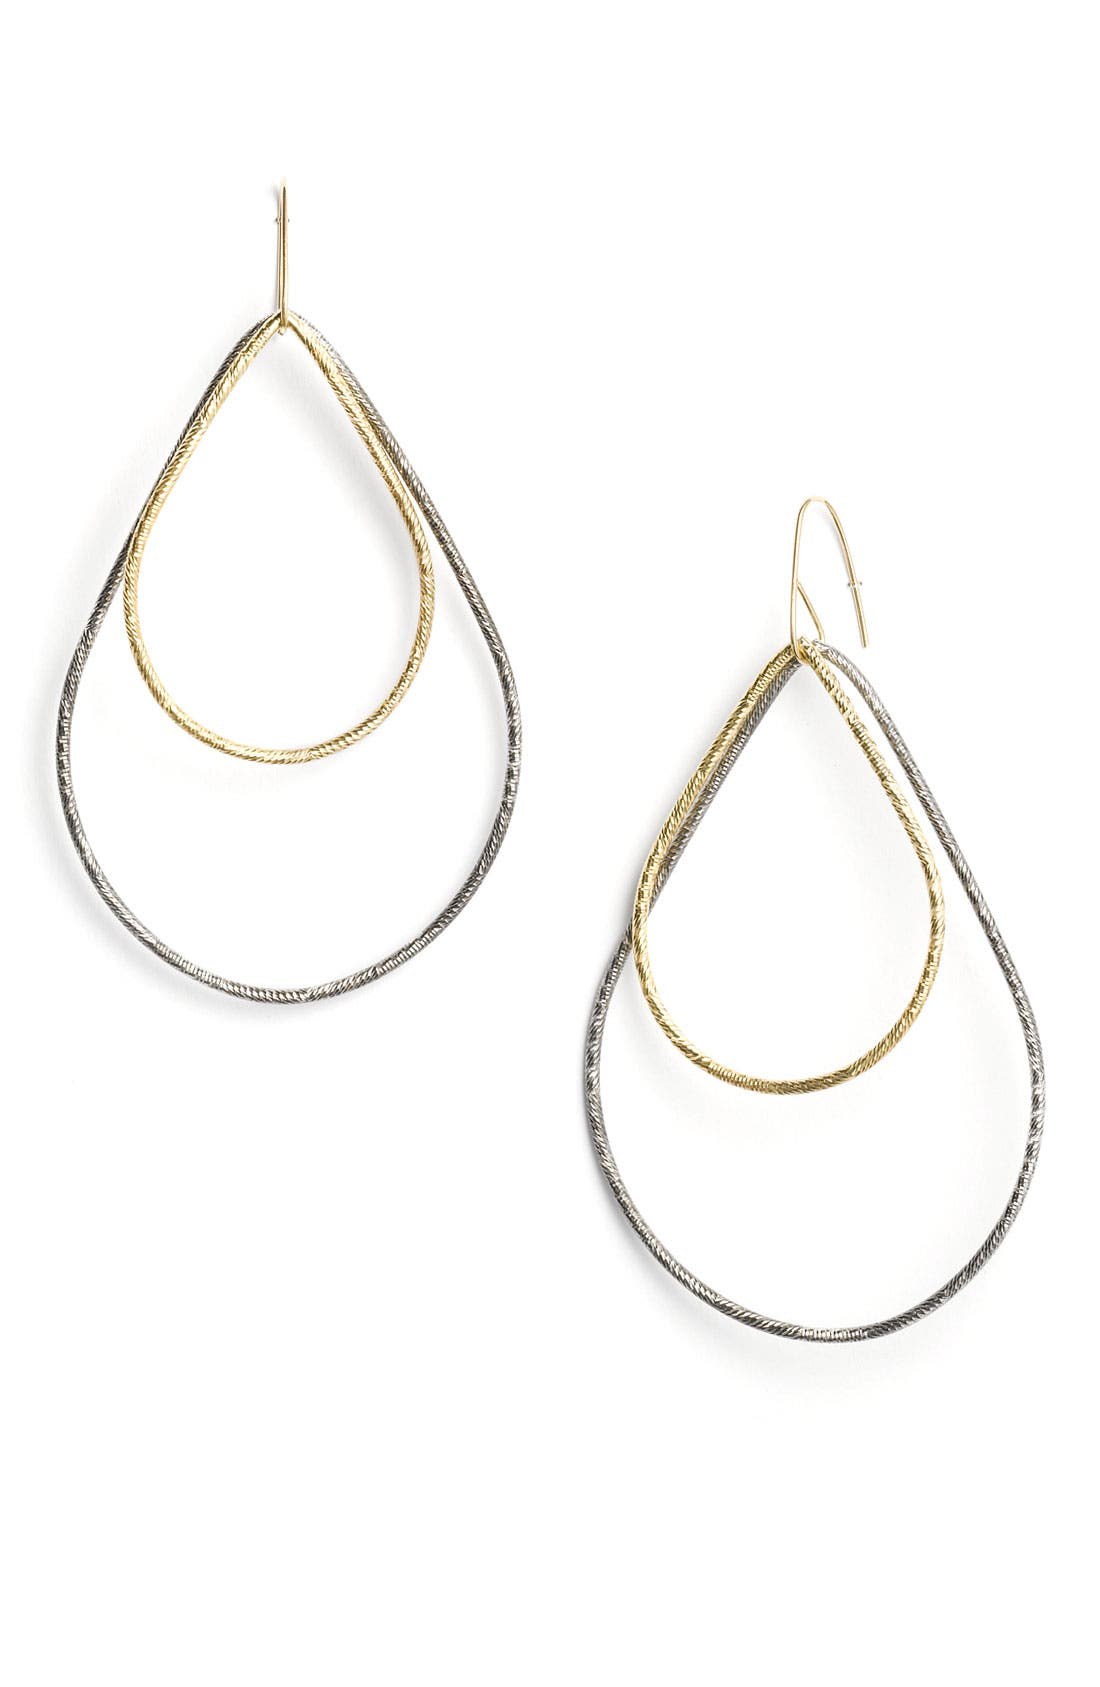 Main Image - Lana Jewelry Double Teardrop Earrings